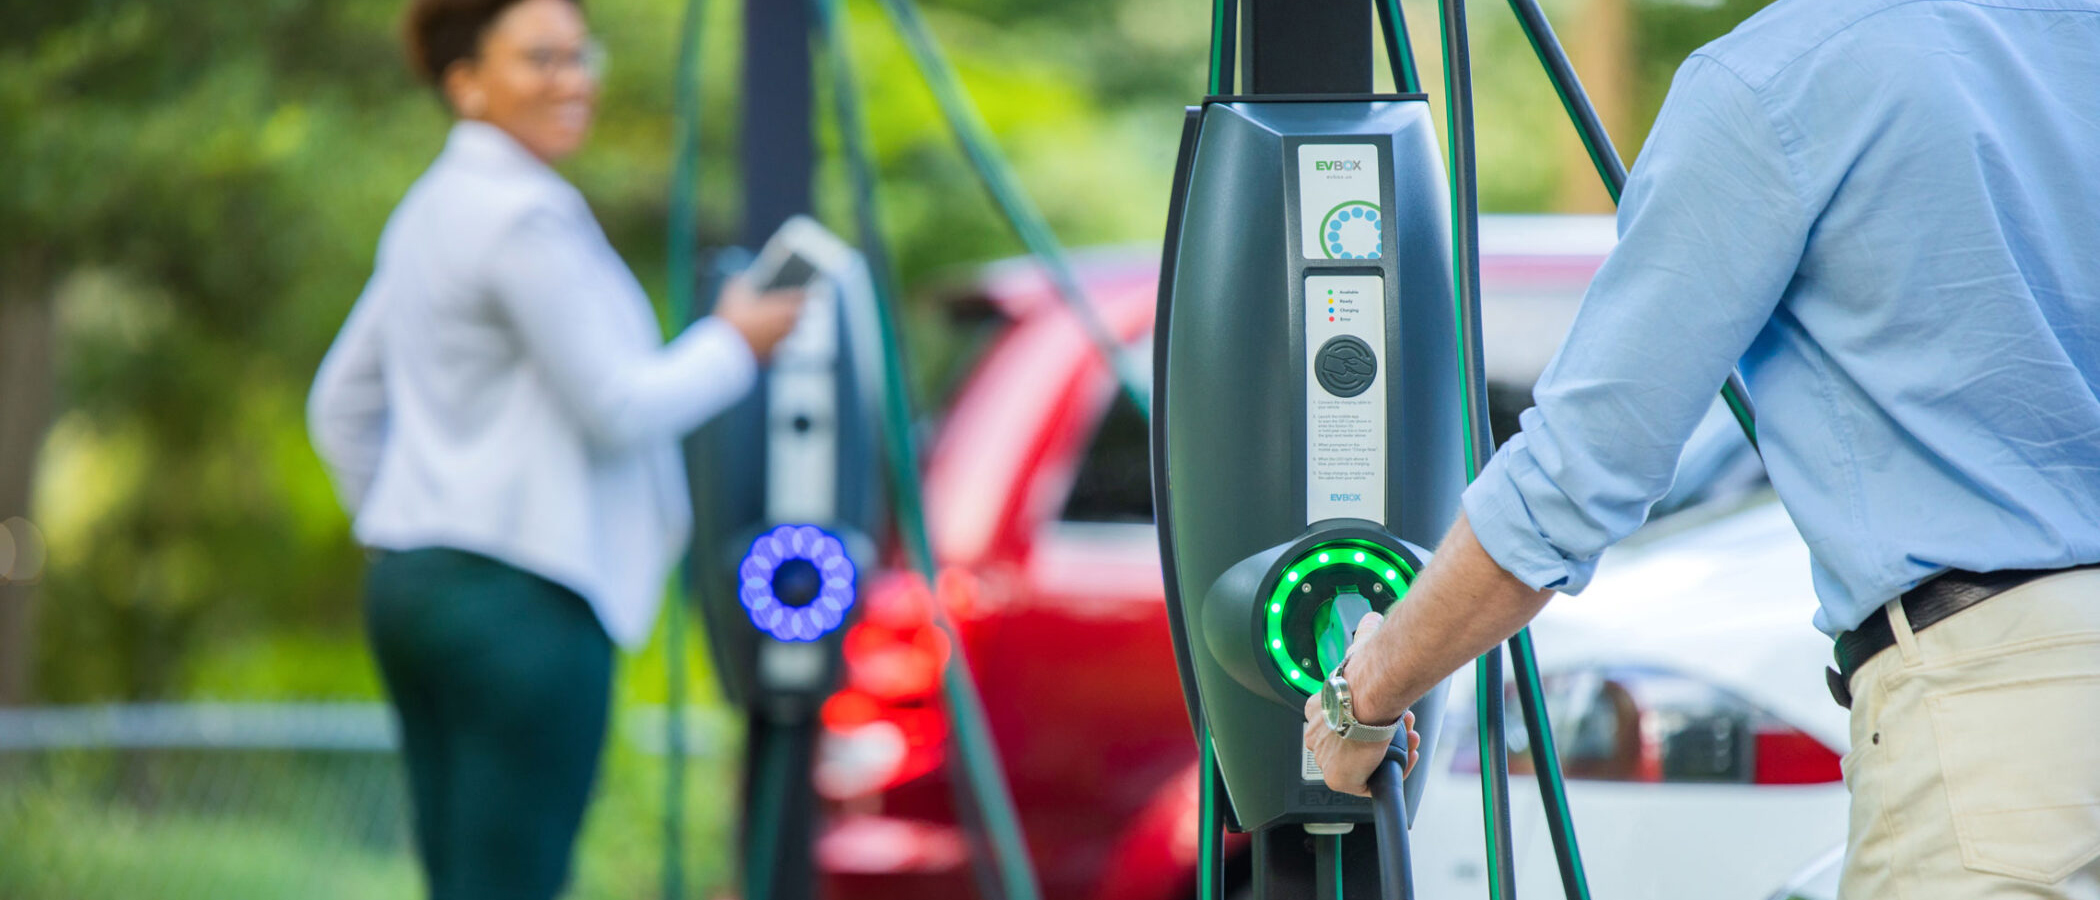 EV Chargers - We can supply and install your EV charger for your home or place of work